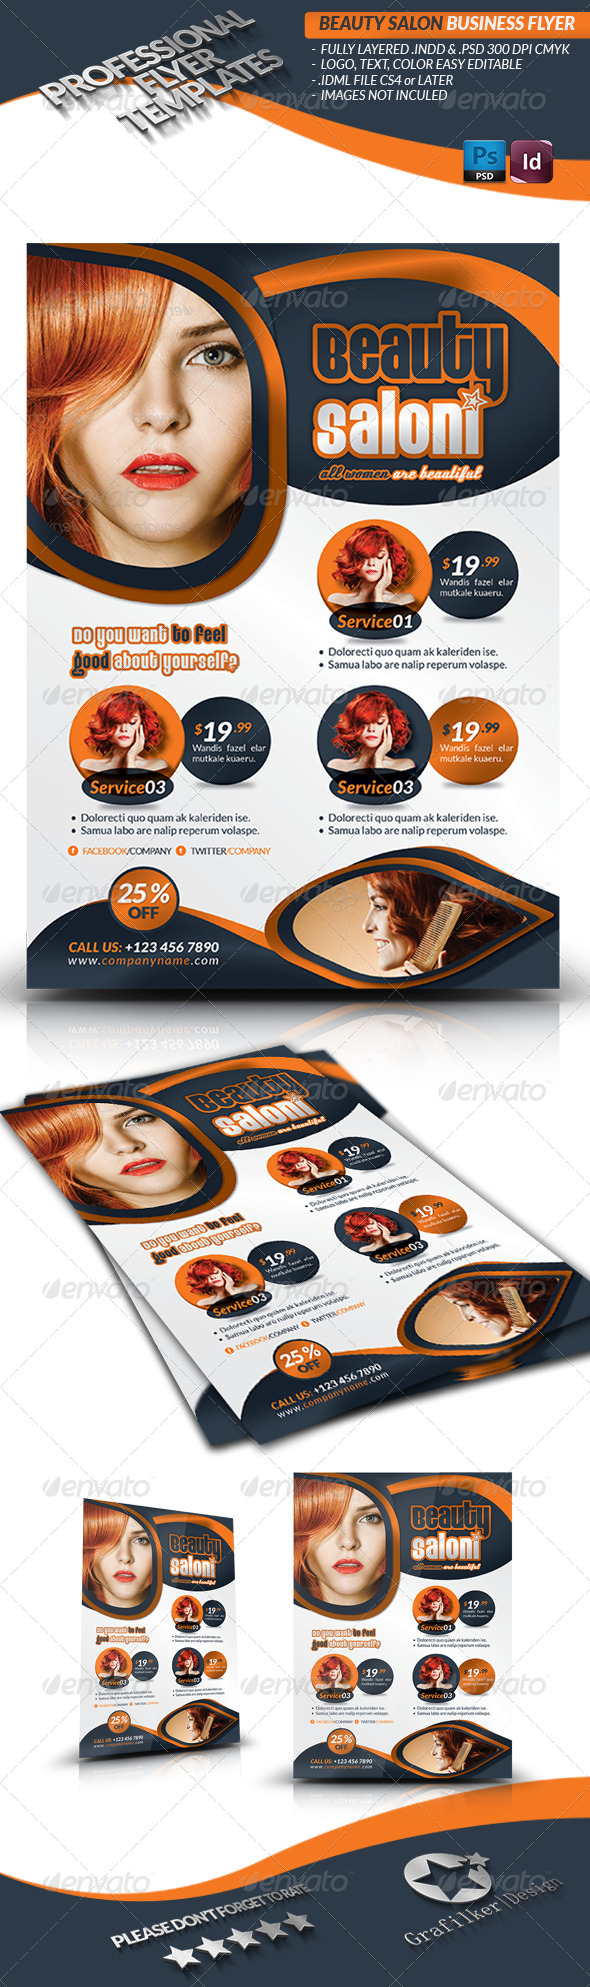 Beauty Salon Flyer Template Graphicriver